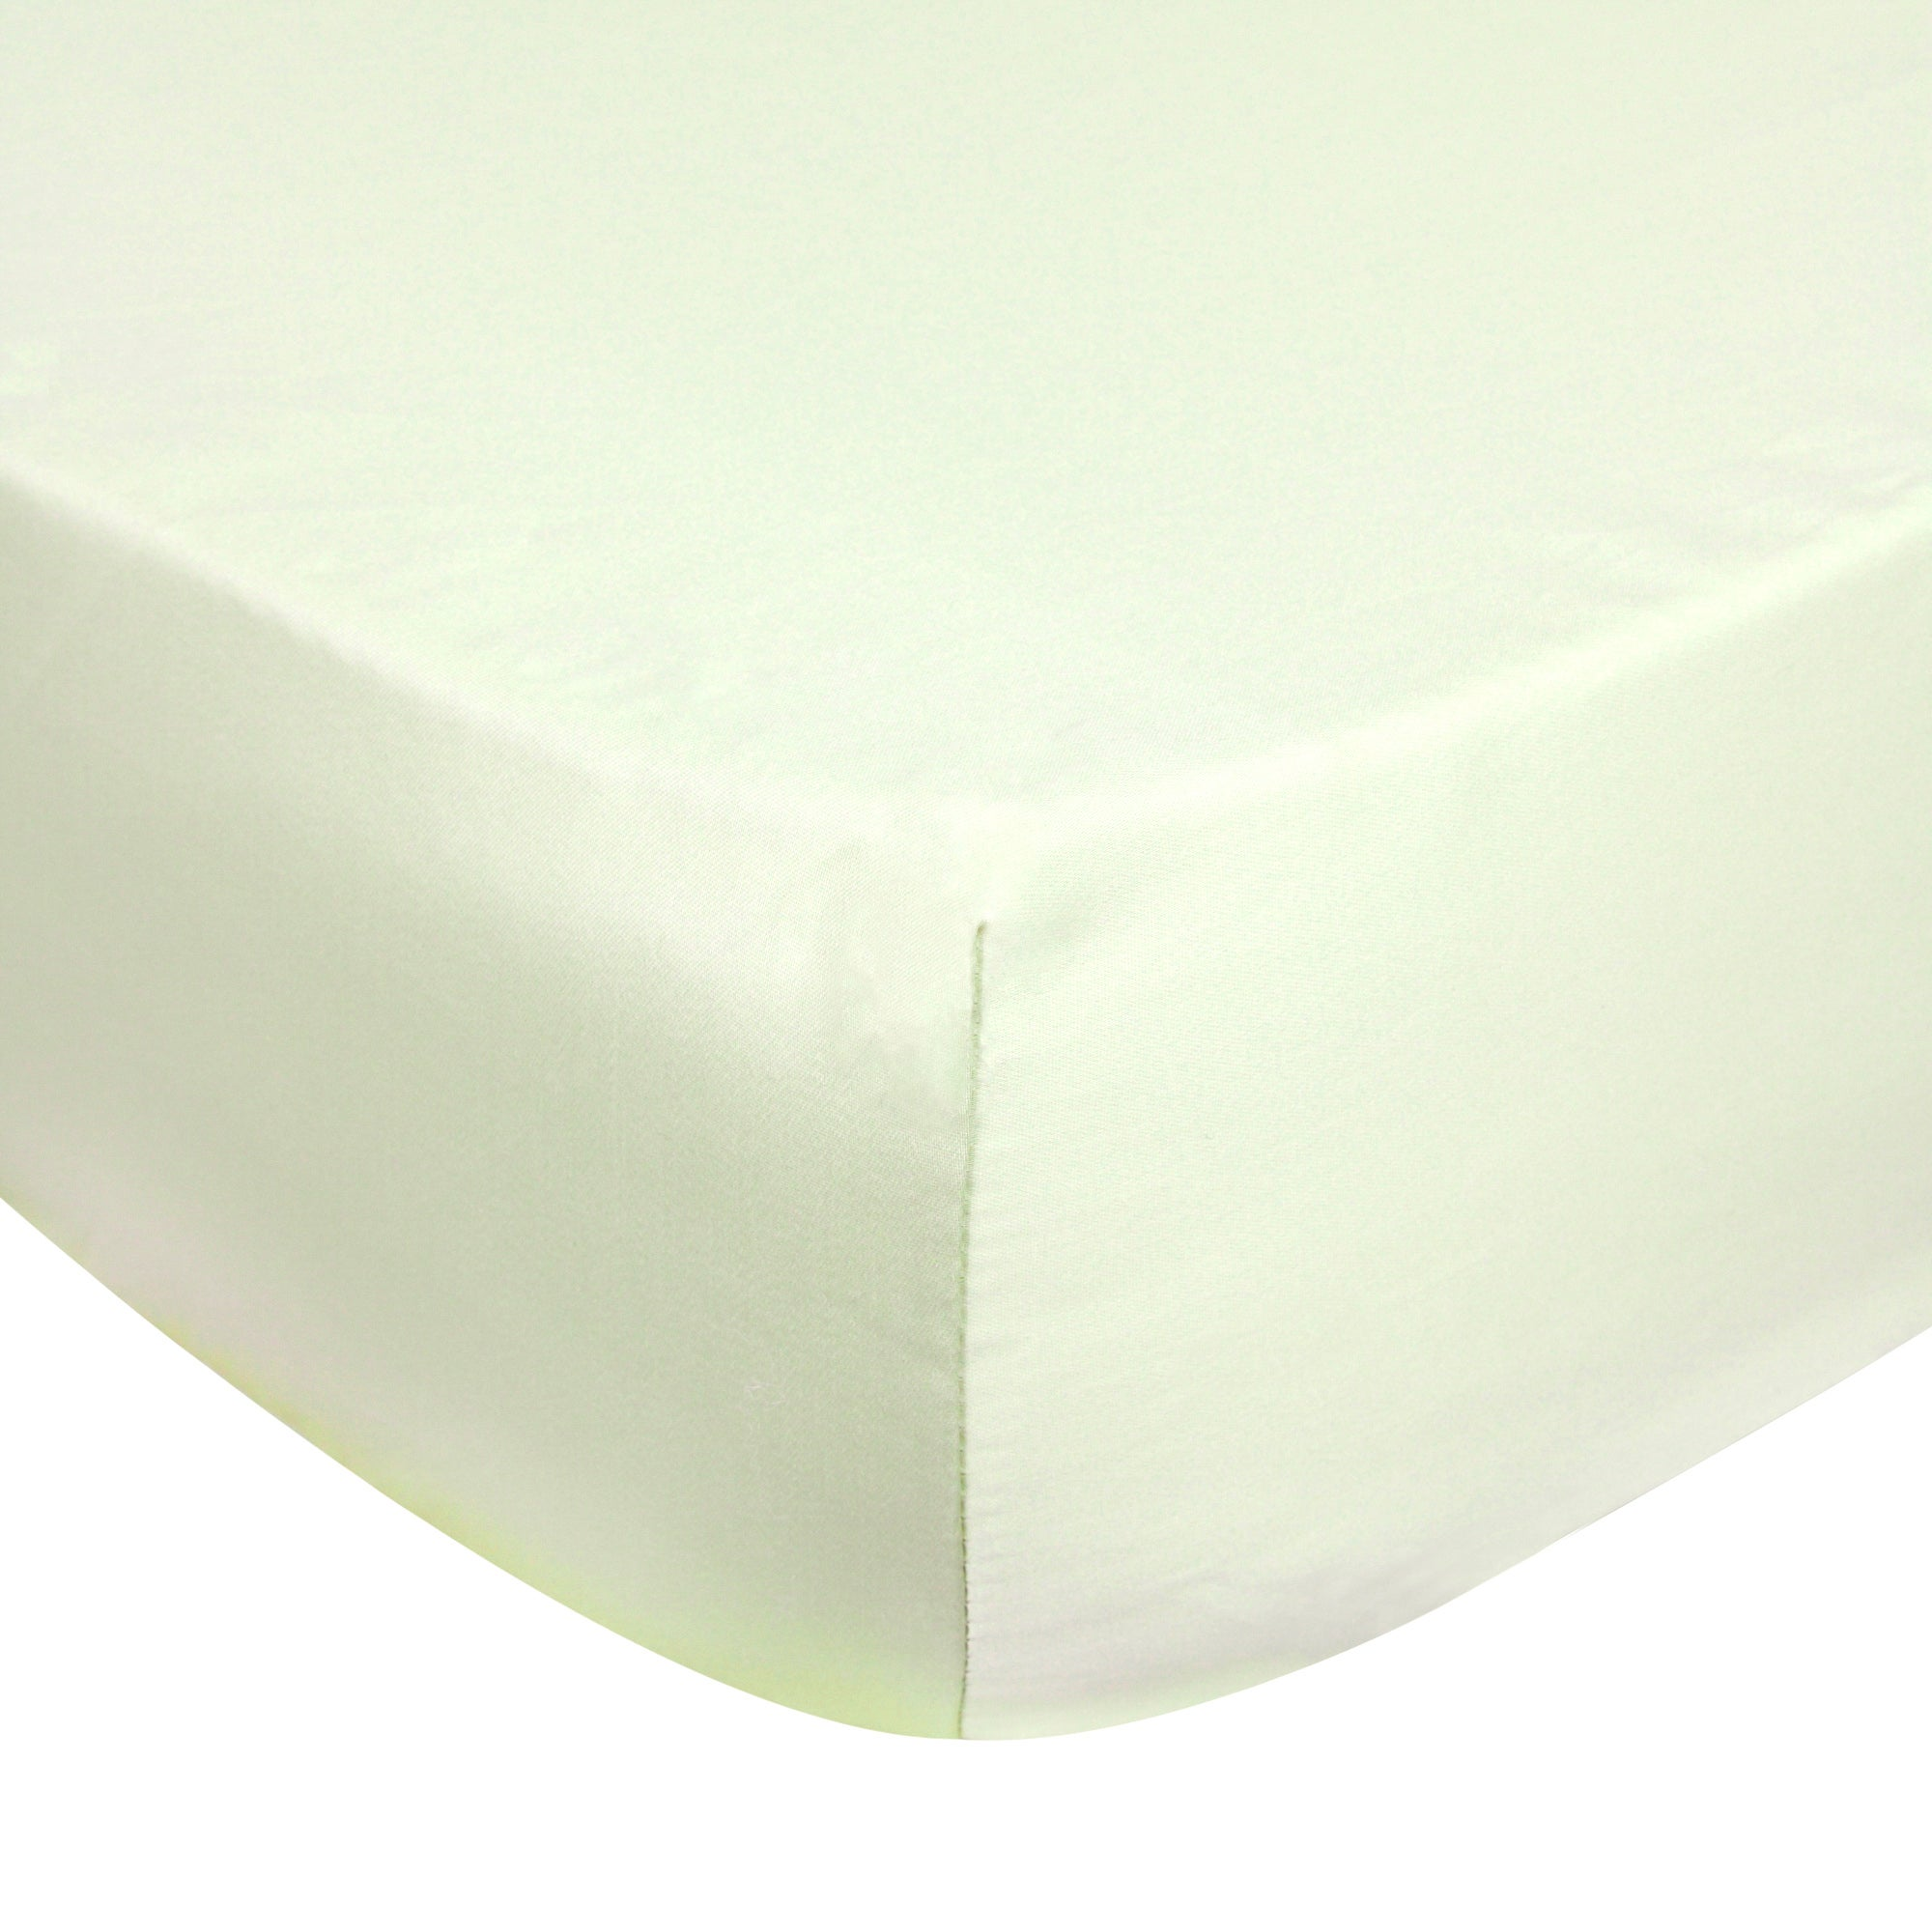 Dorma Green 350 Thread Count Plain Dye Bed Linen Collection Extra Deep Fitted Sheet